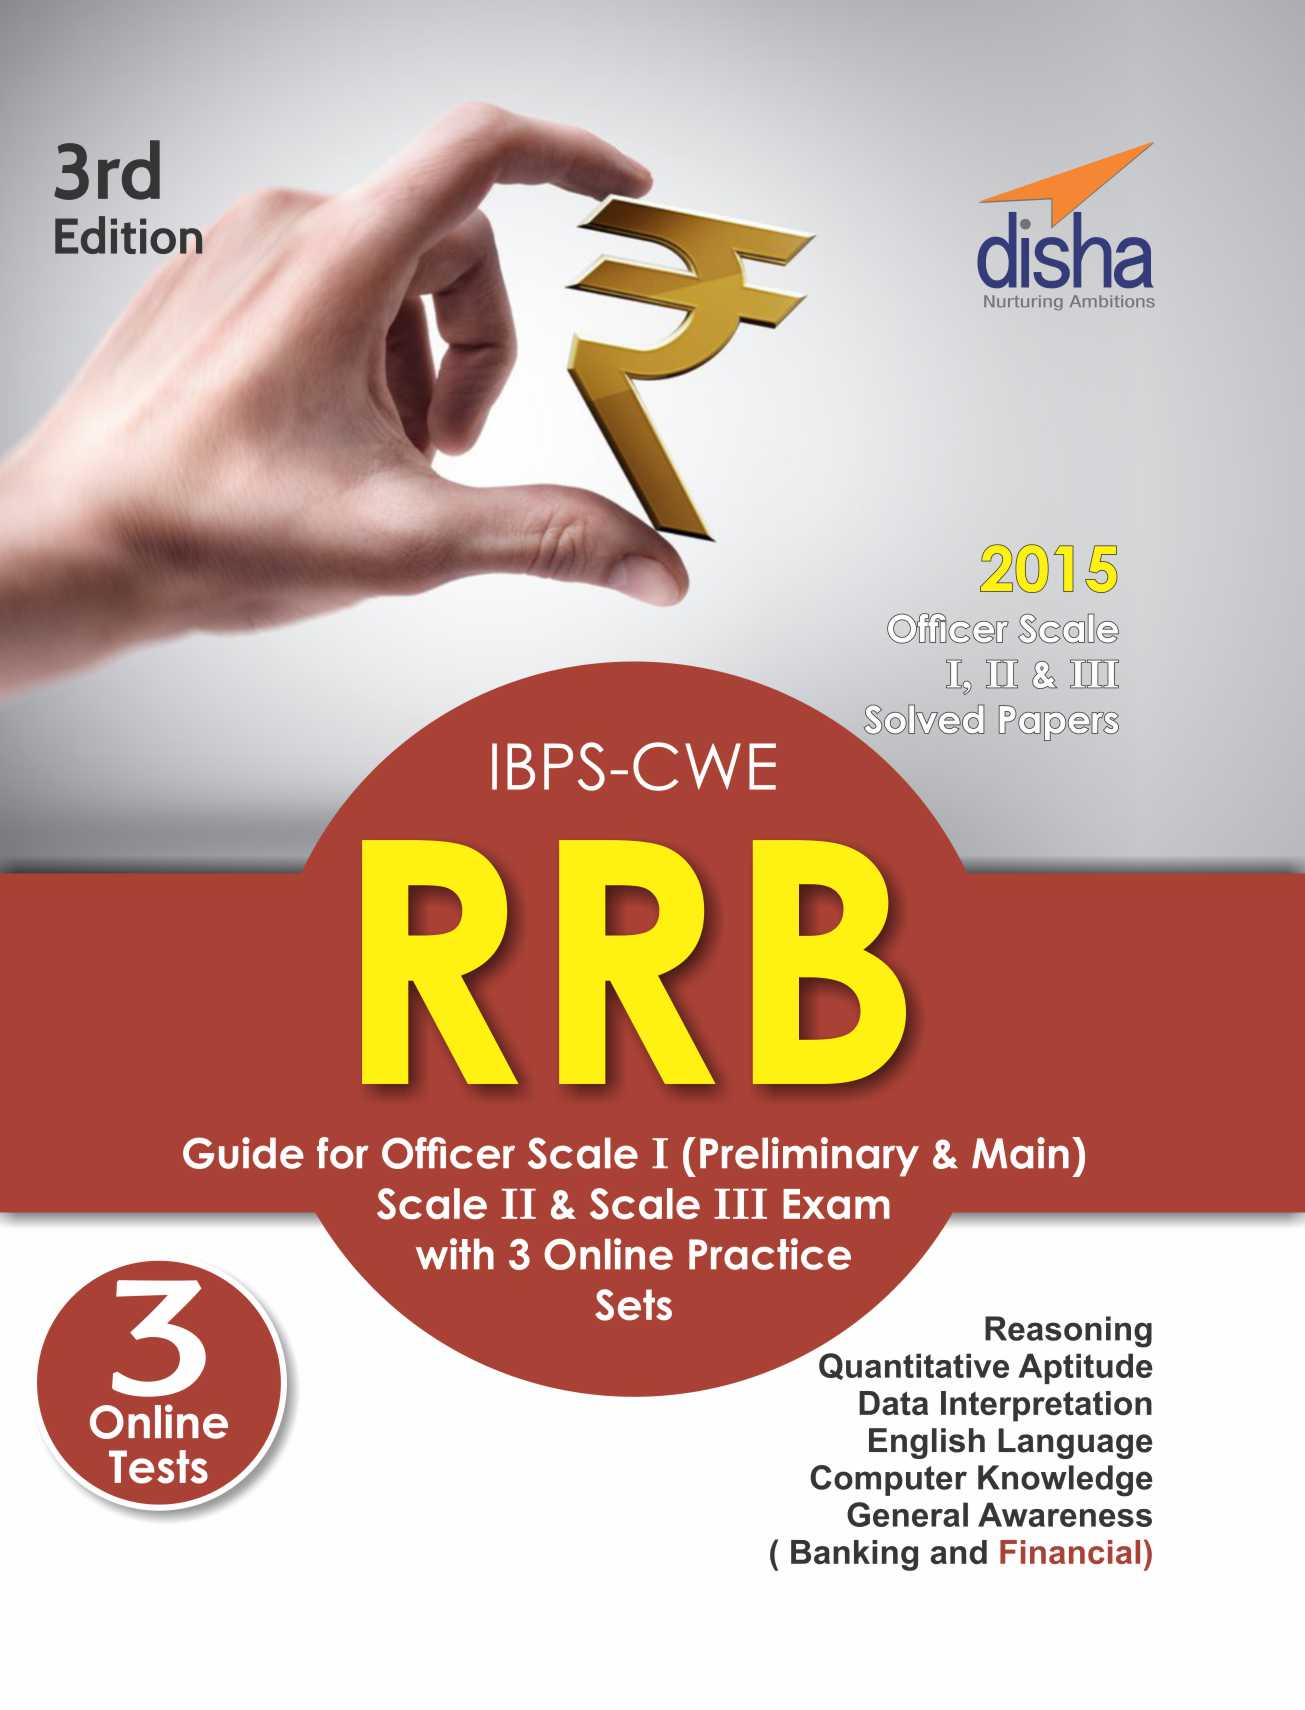 IBPS-CWE RRB Guide for Officer Scale -I